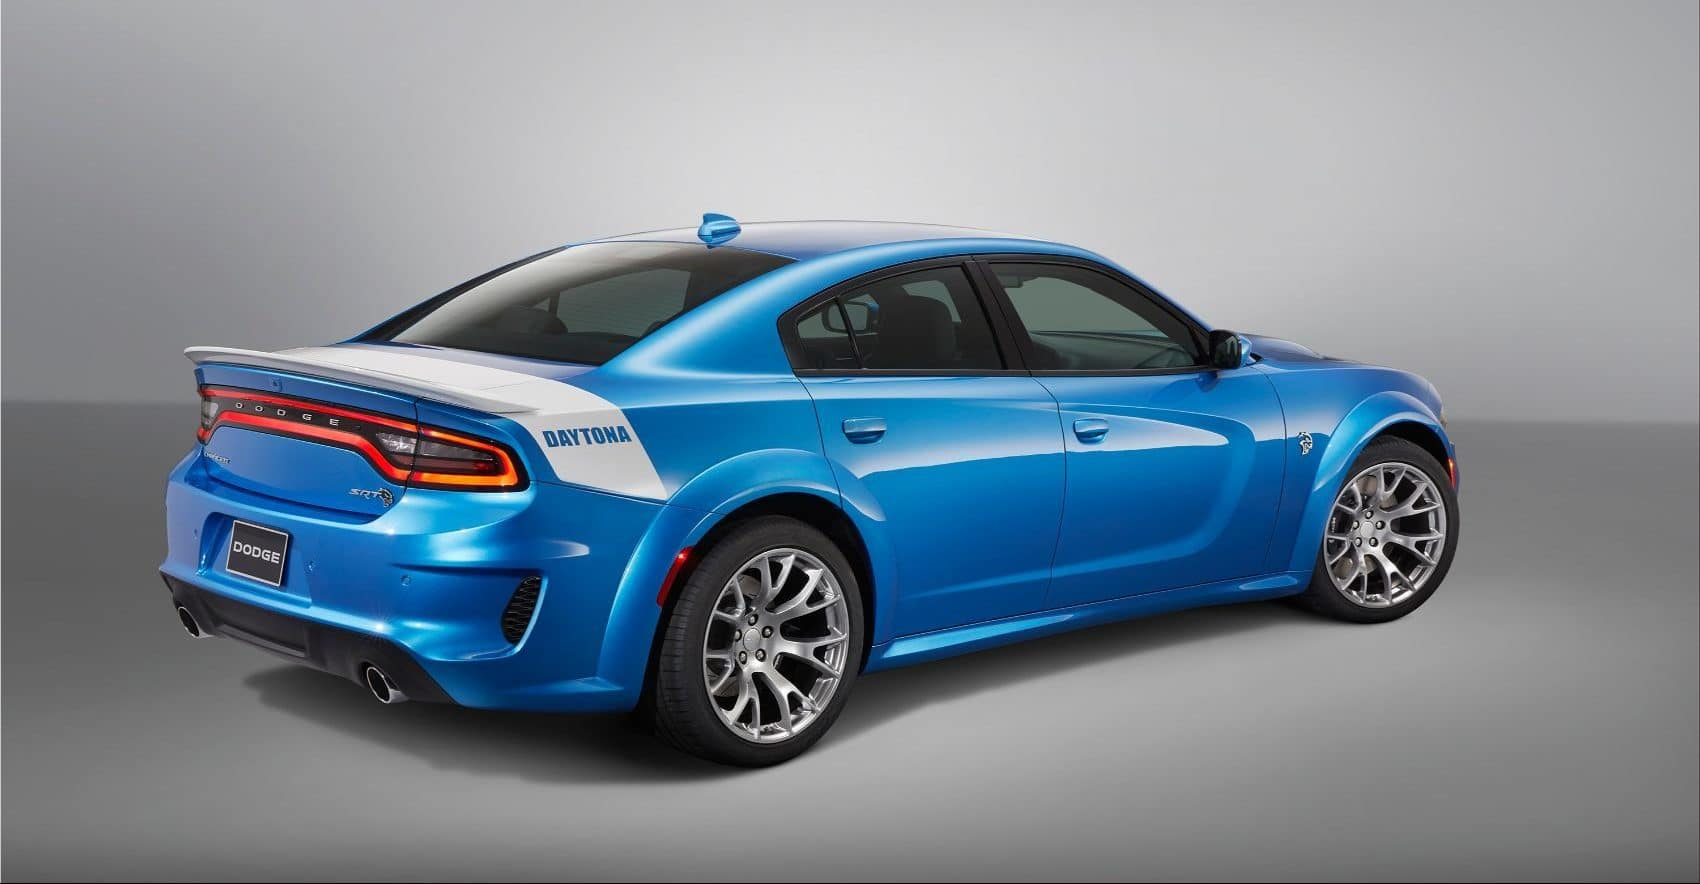 Dodge Charger Daytona 50th Anniversary Edition: Fit For The King